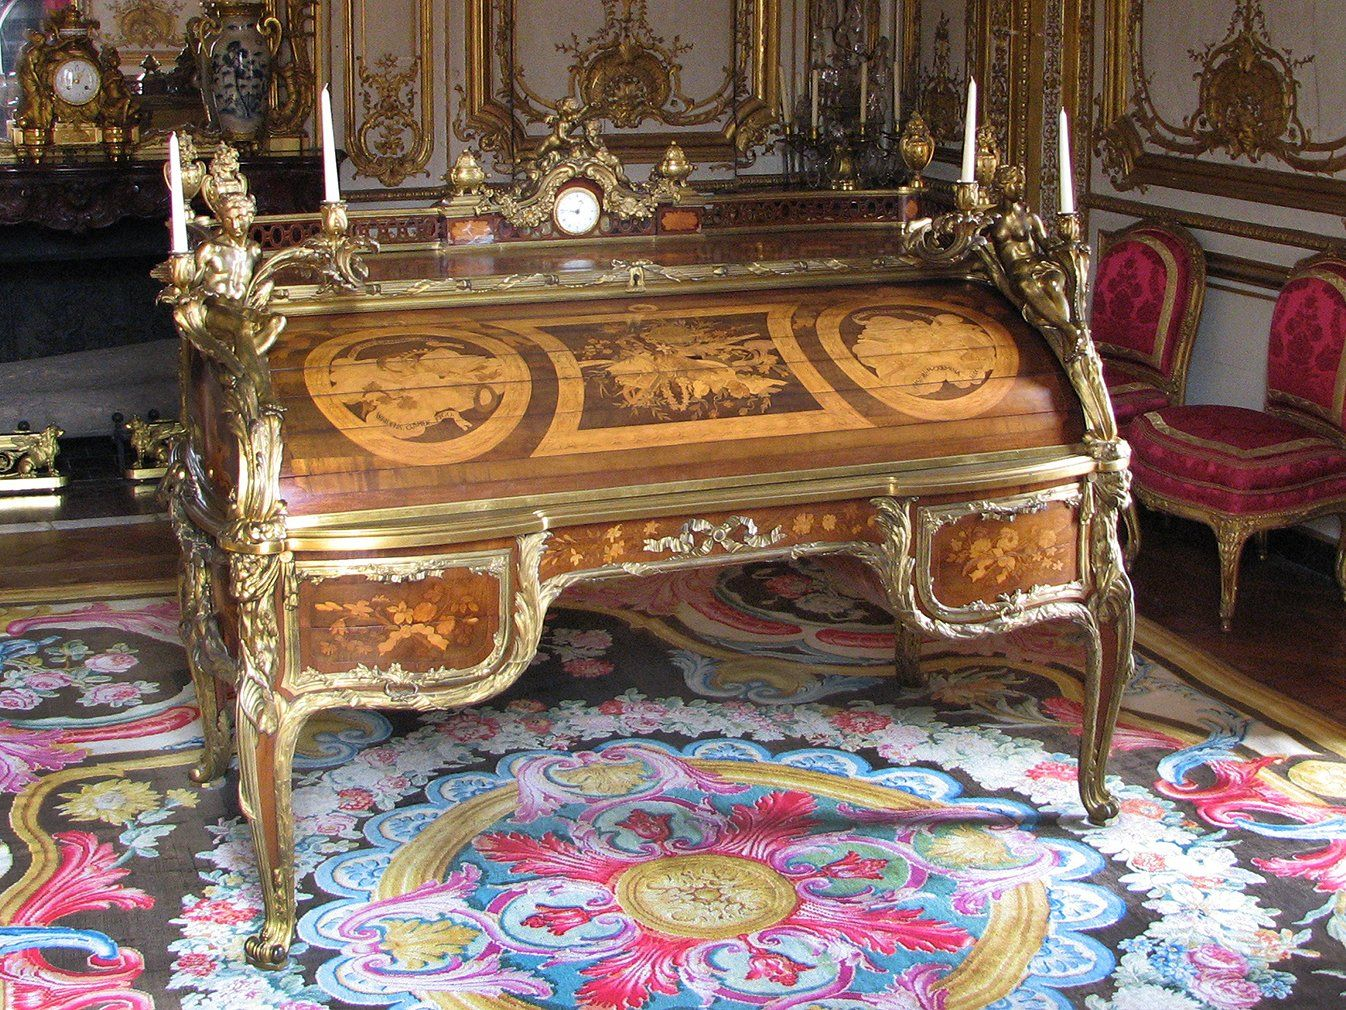 secr taire cylindre le bureau du roi jean fran ois oeben 1721 1763 et jean henri riesener. Black Bedroom Furniture Sets. Home Design Ideas